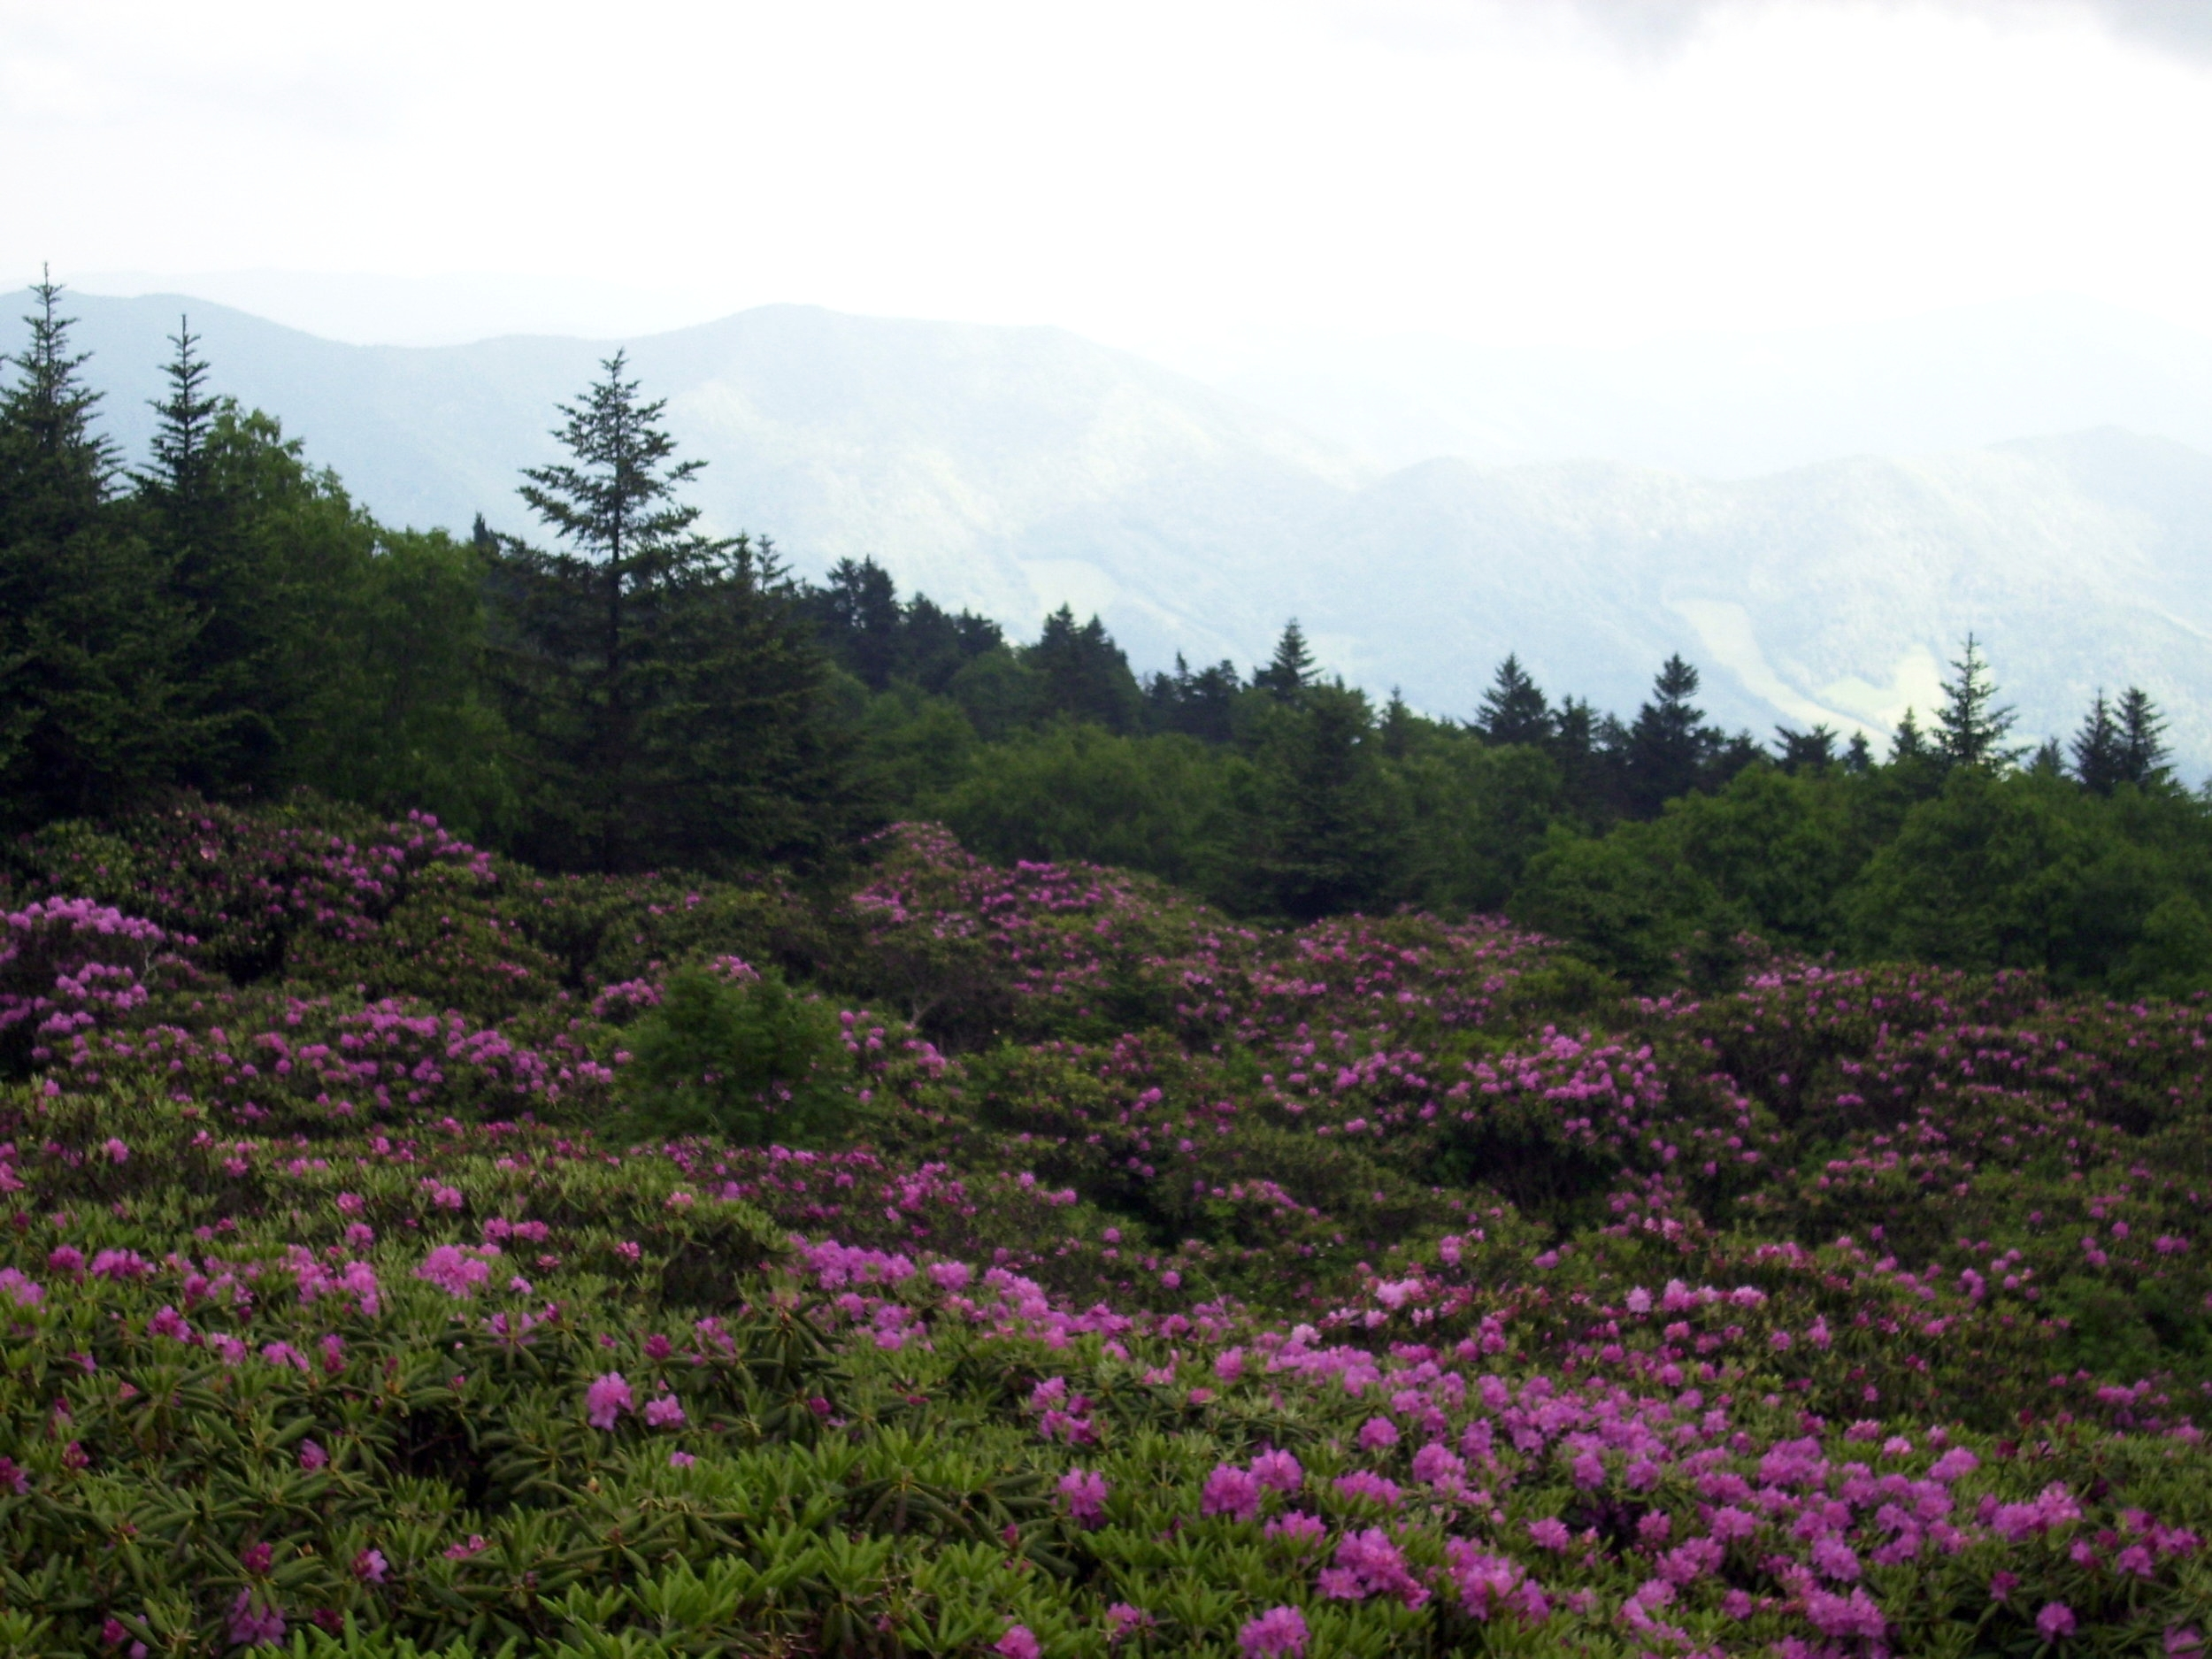 The rhododendron gardens at Roan Mountain are among the largest collections of the Catawba variety anywhere in the world.